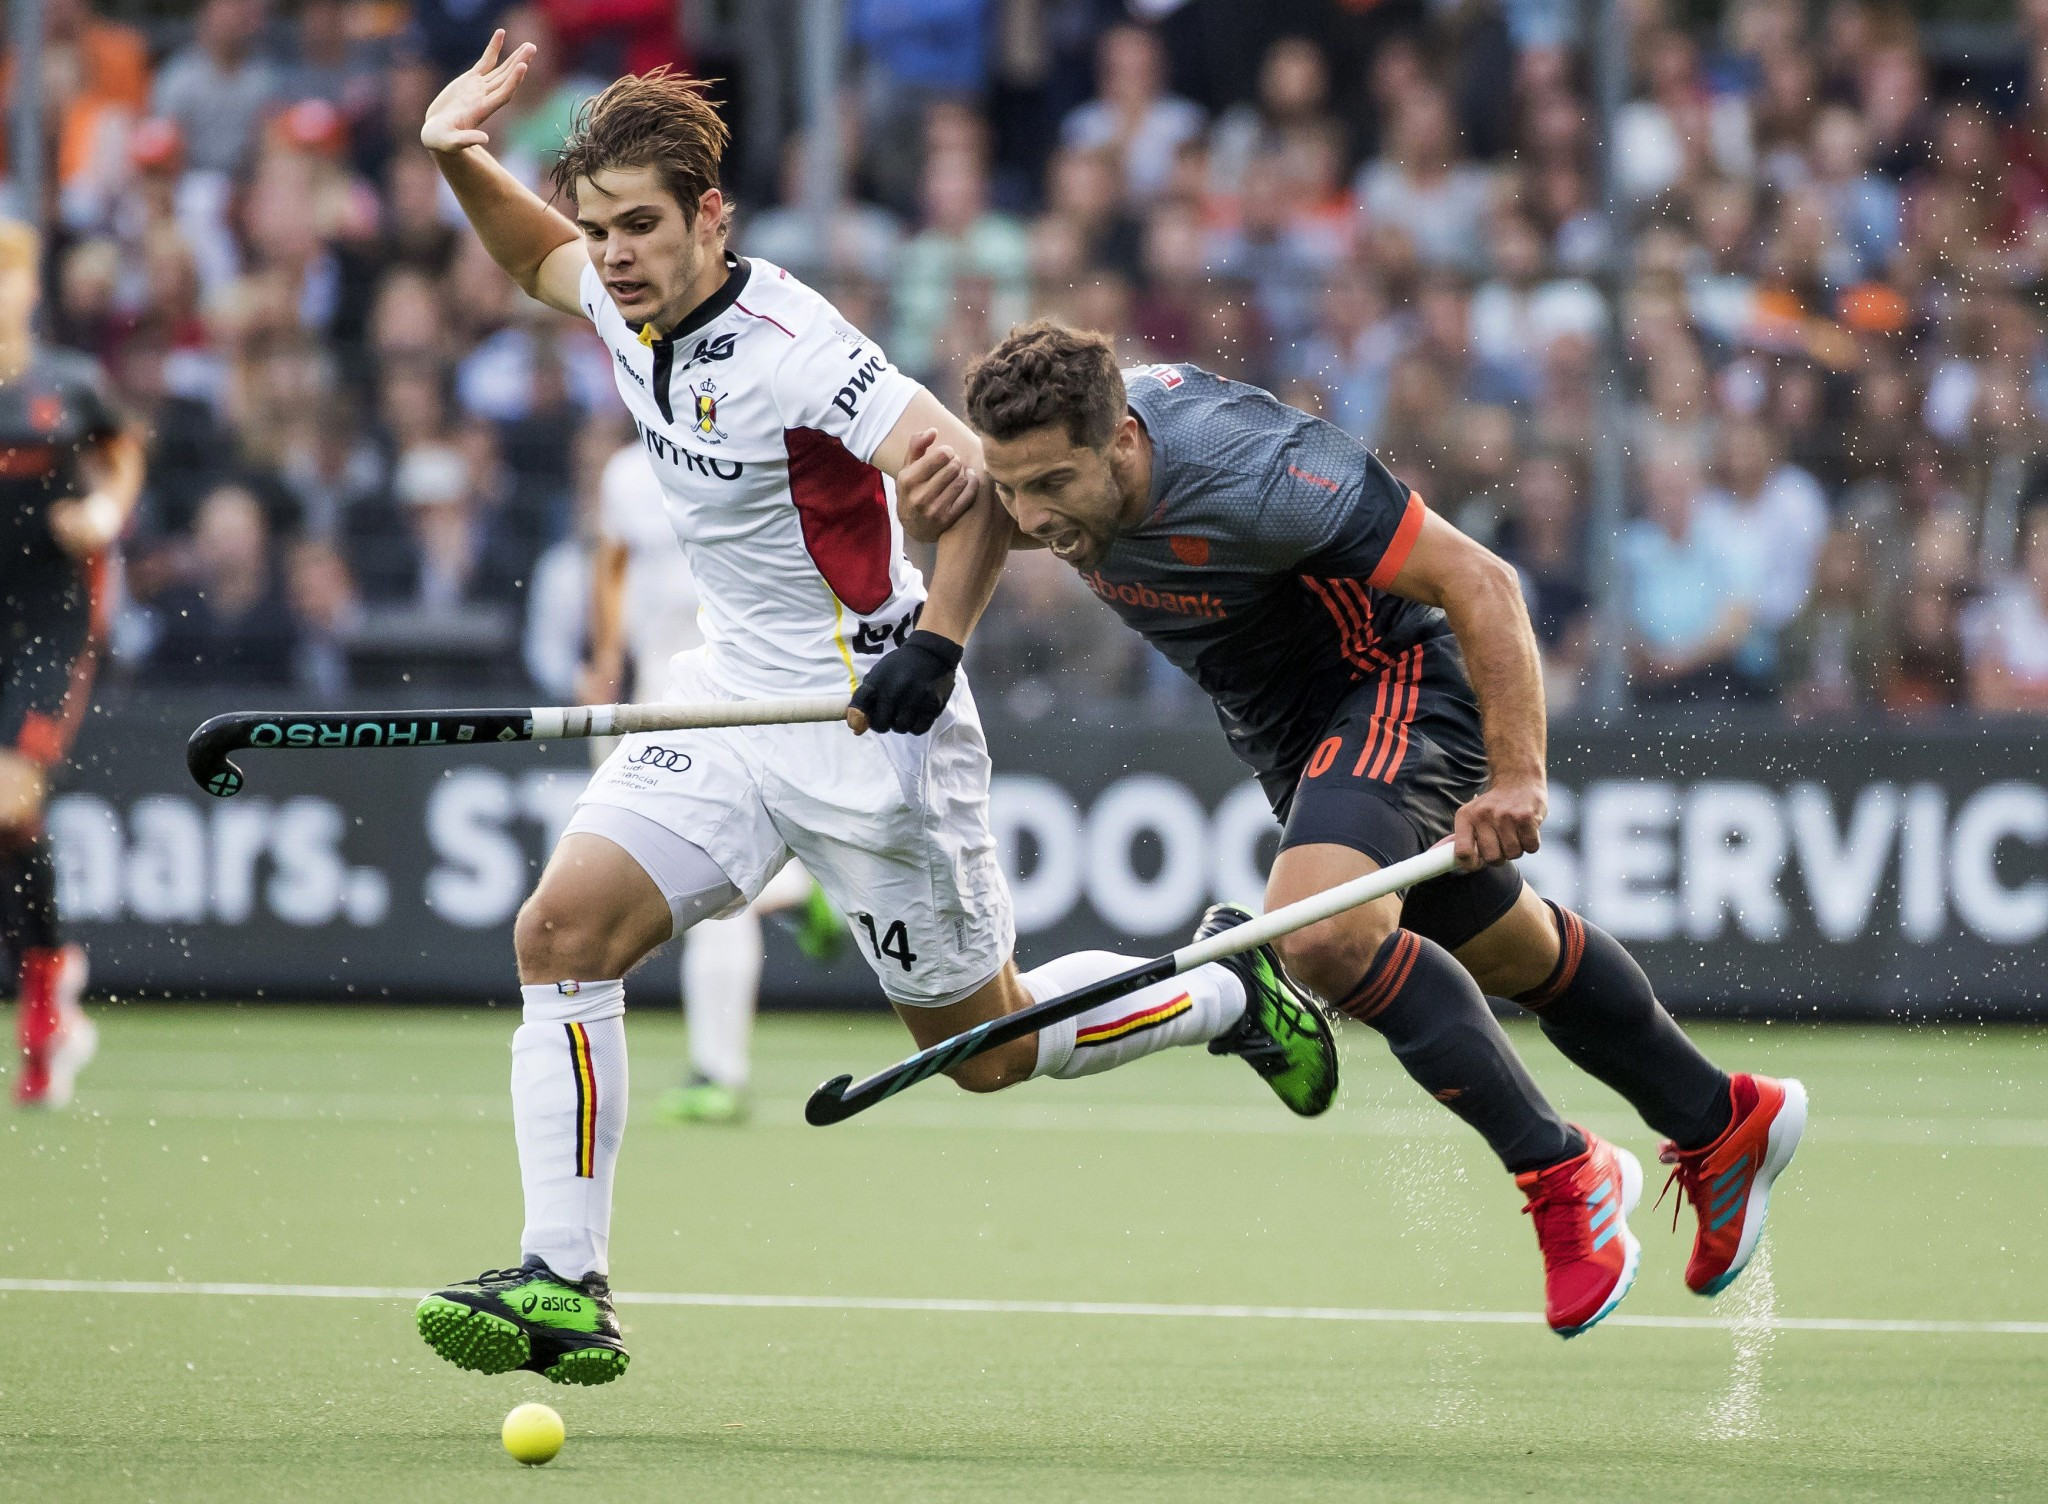 Belgium thrash hosts at EuroHockey Championships